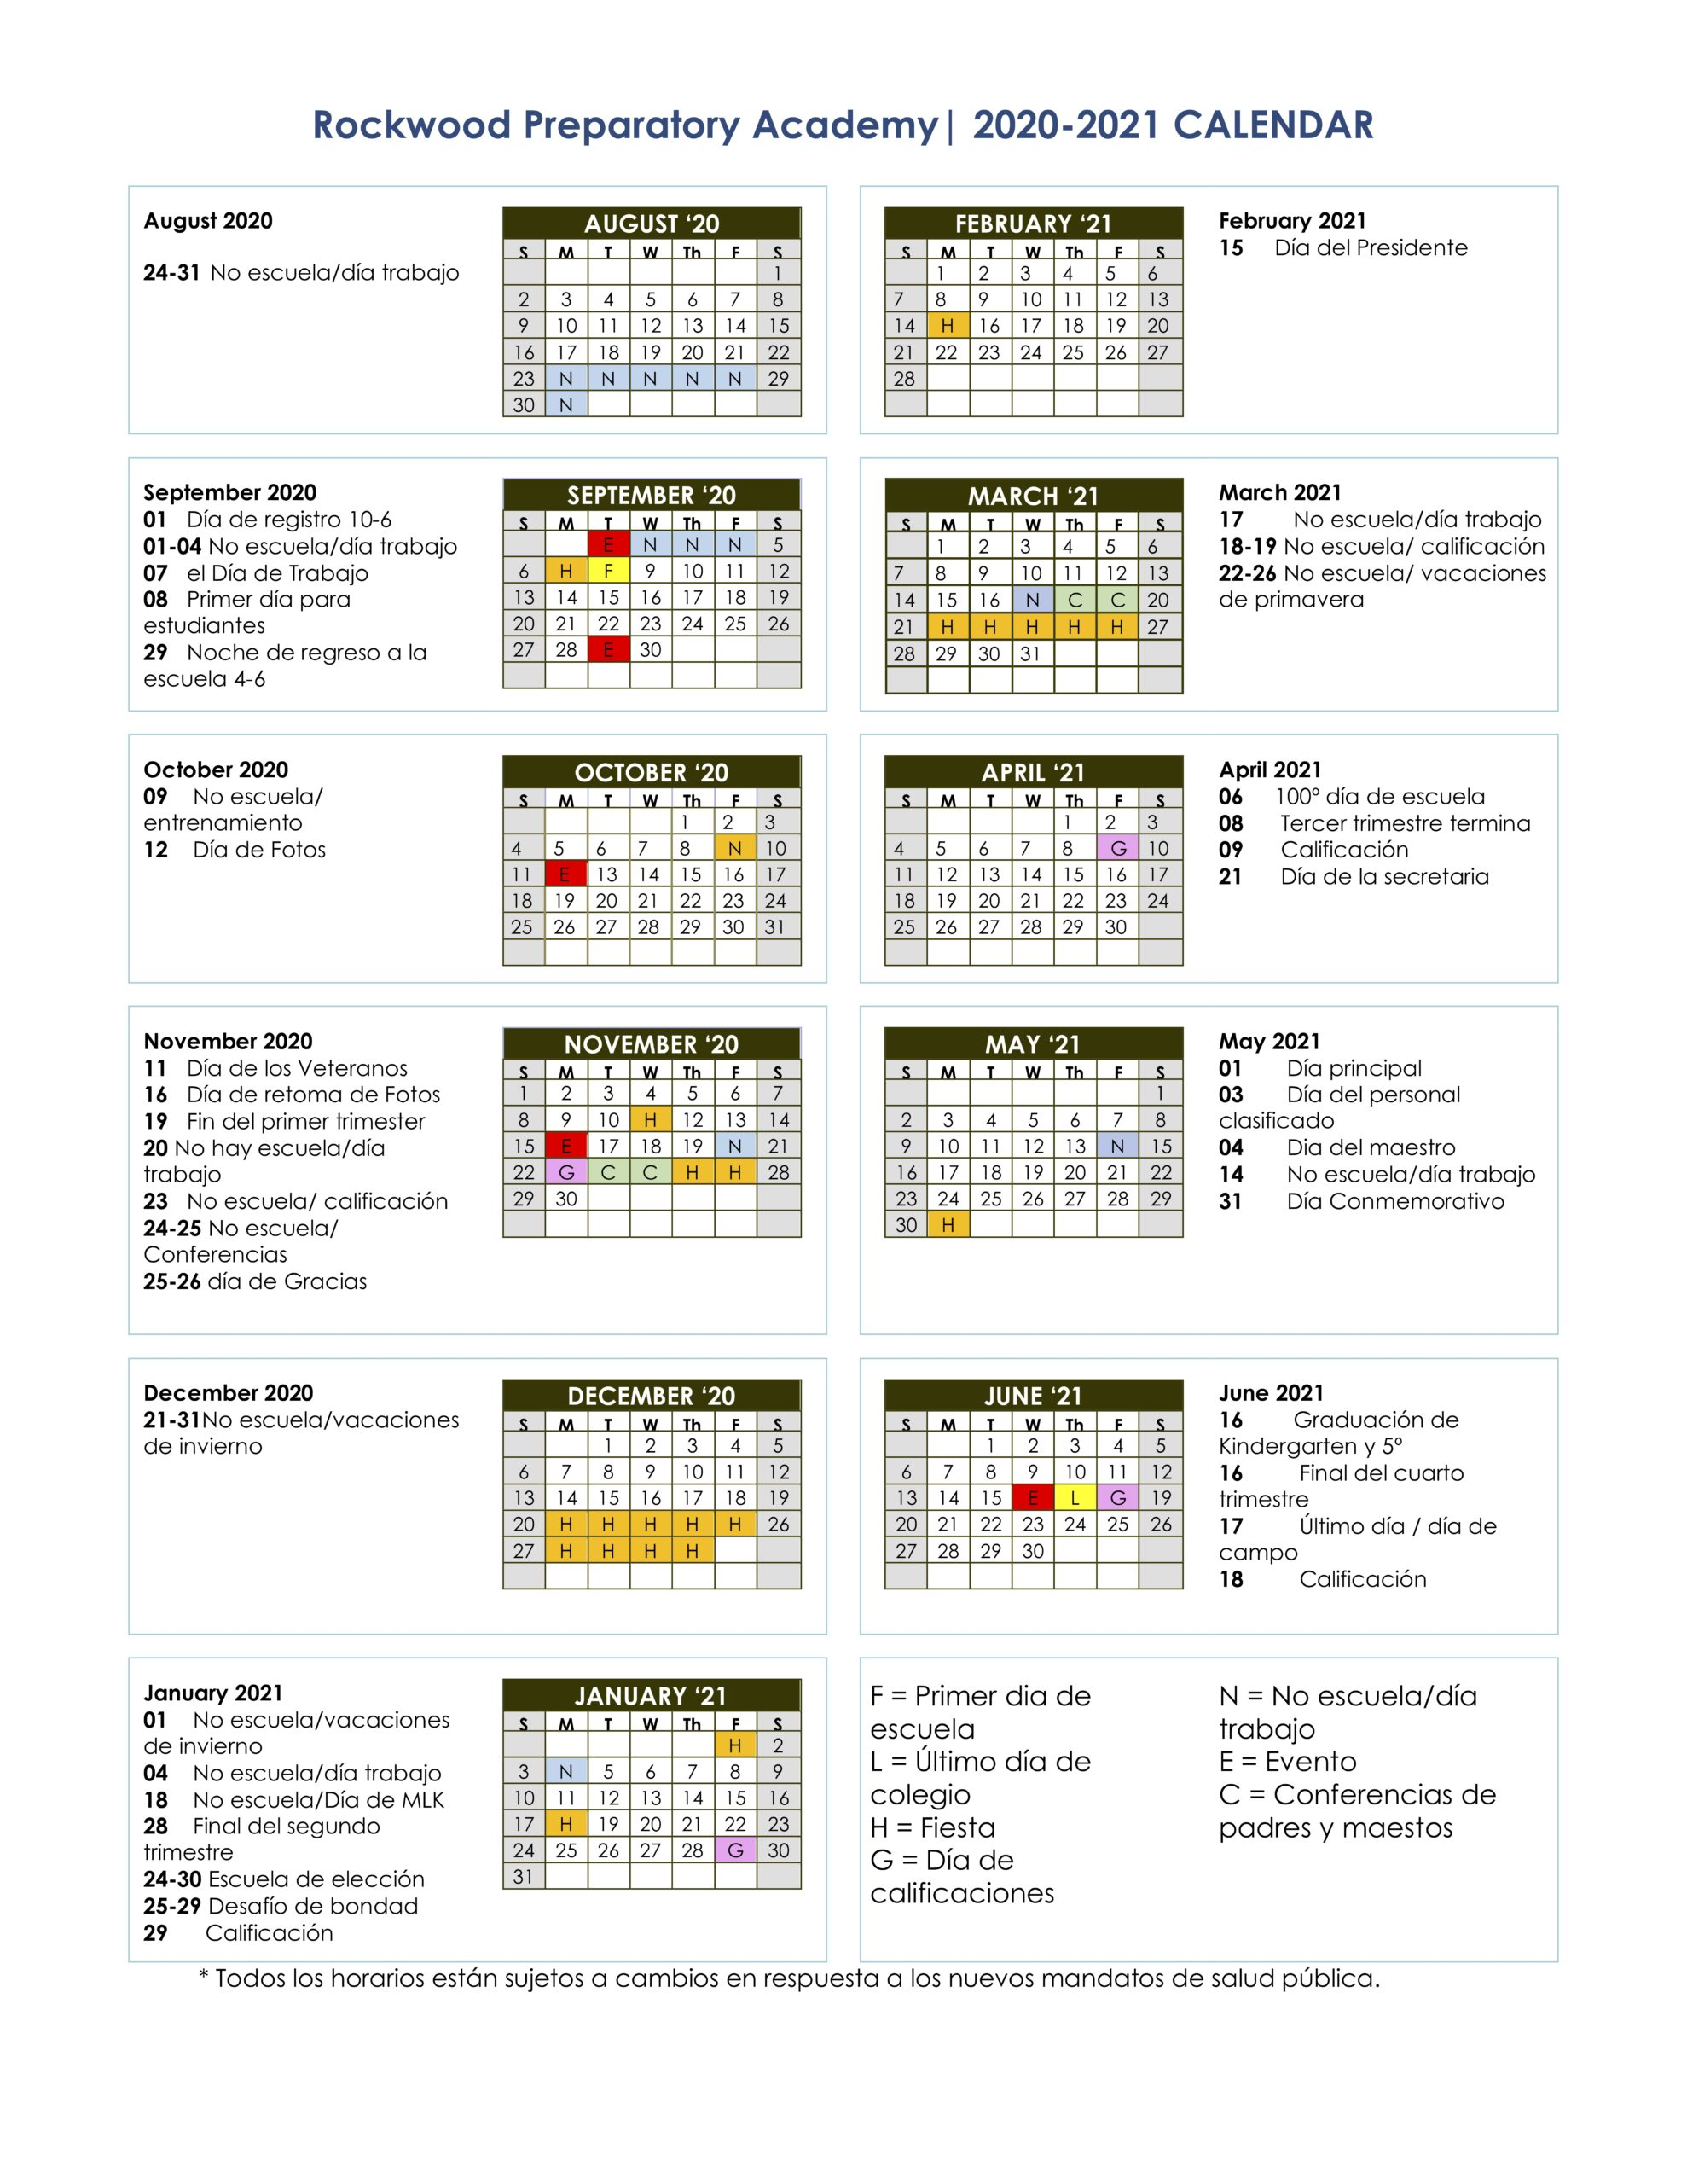 Rockwood-Prep-School-Calendar-20-21-Spanish-scaled.jpg